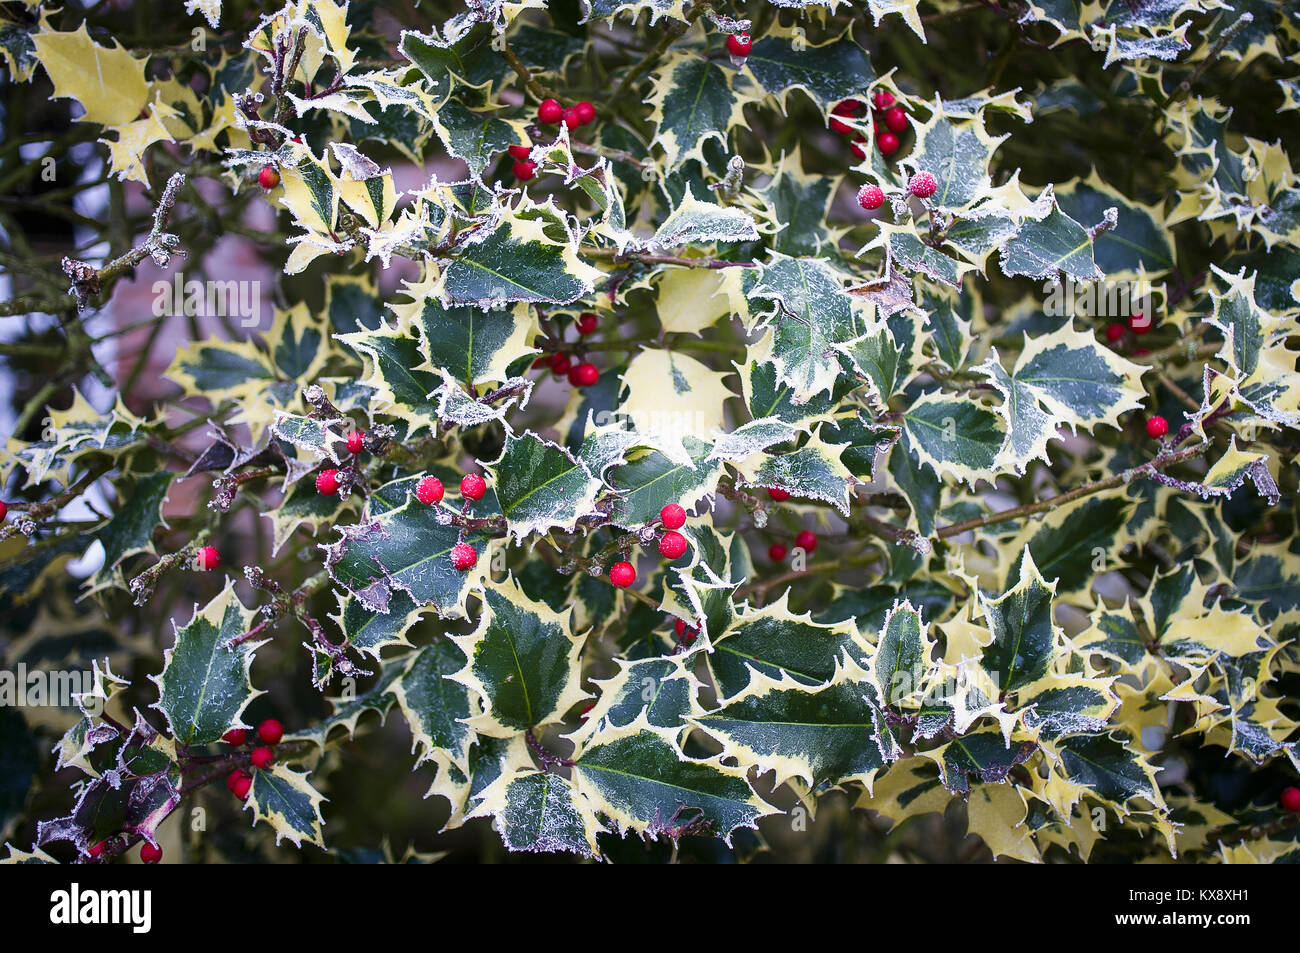 Frosted variegated holly with red berries in winter - Stock Image